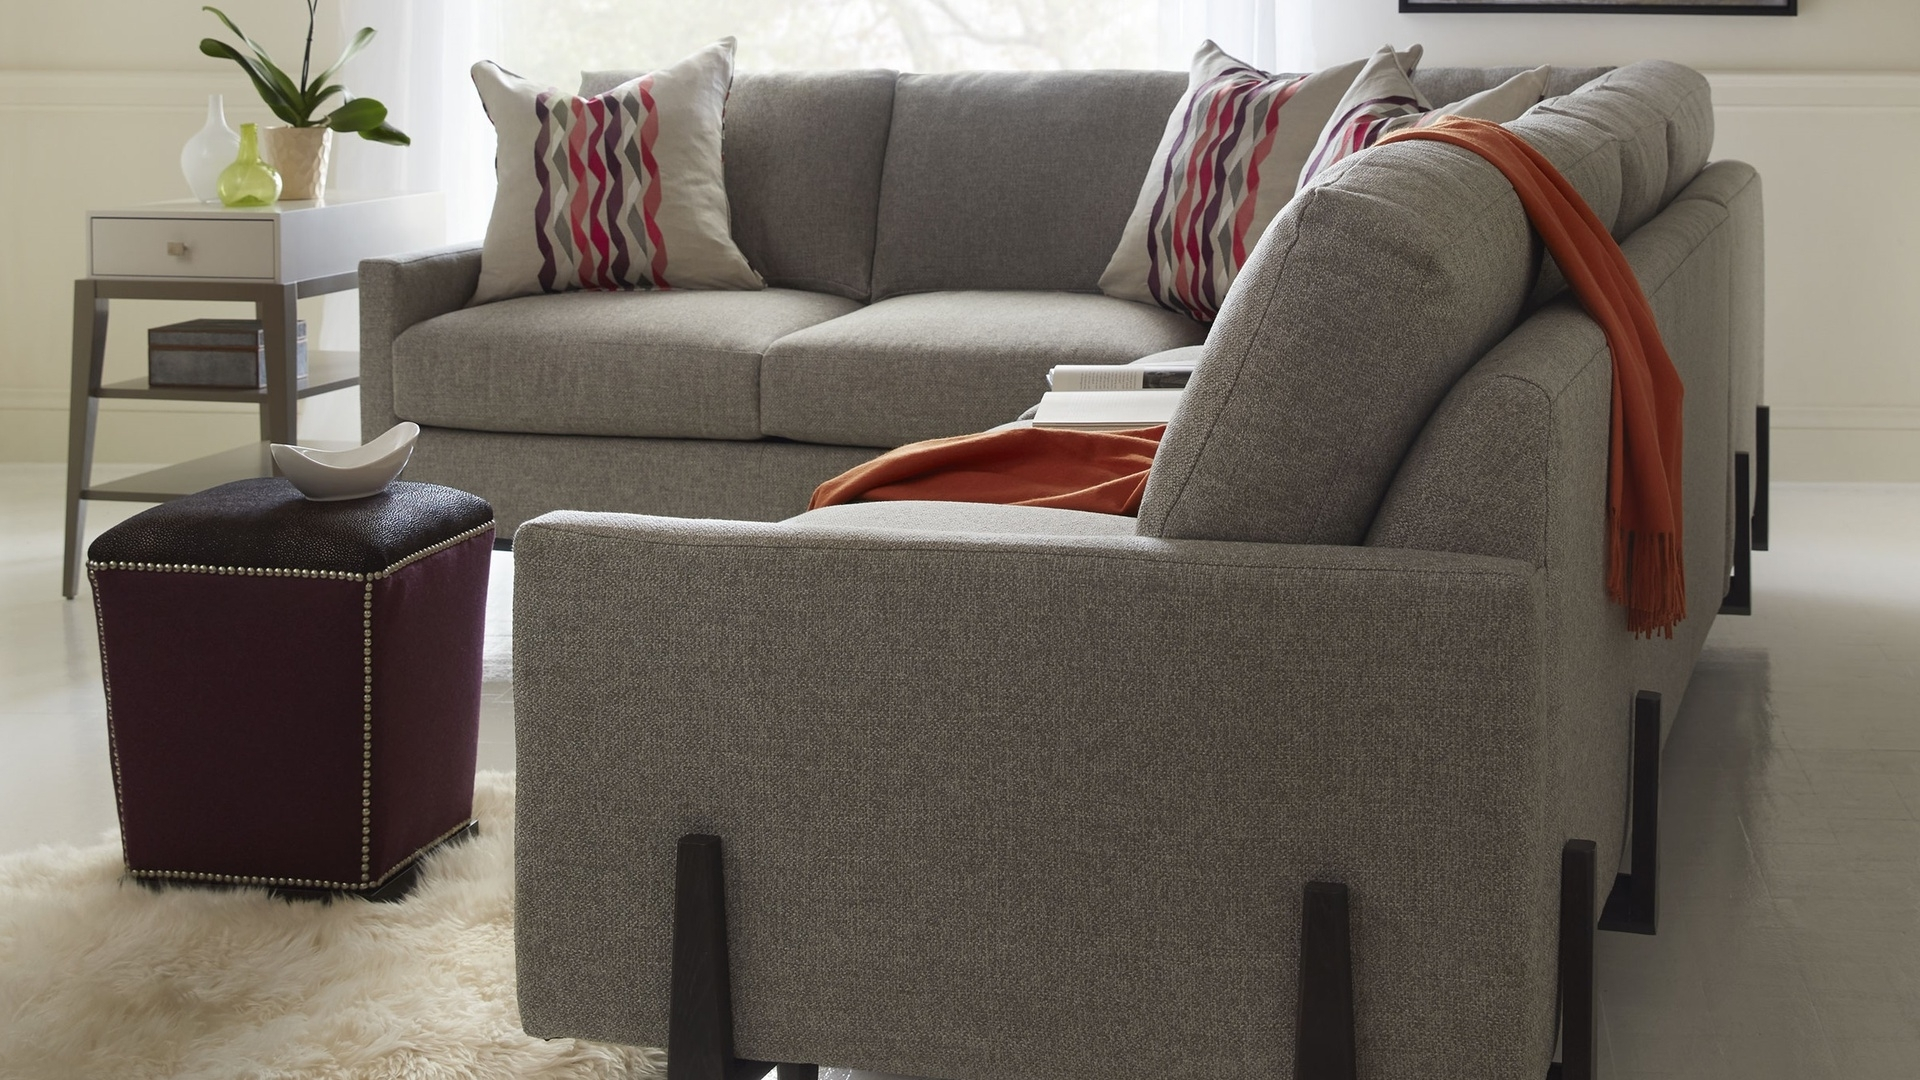 Stanford Furniture Intended For Most Current Made In North Carolina Sectional Sofas (View 16 of 20)